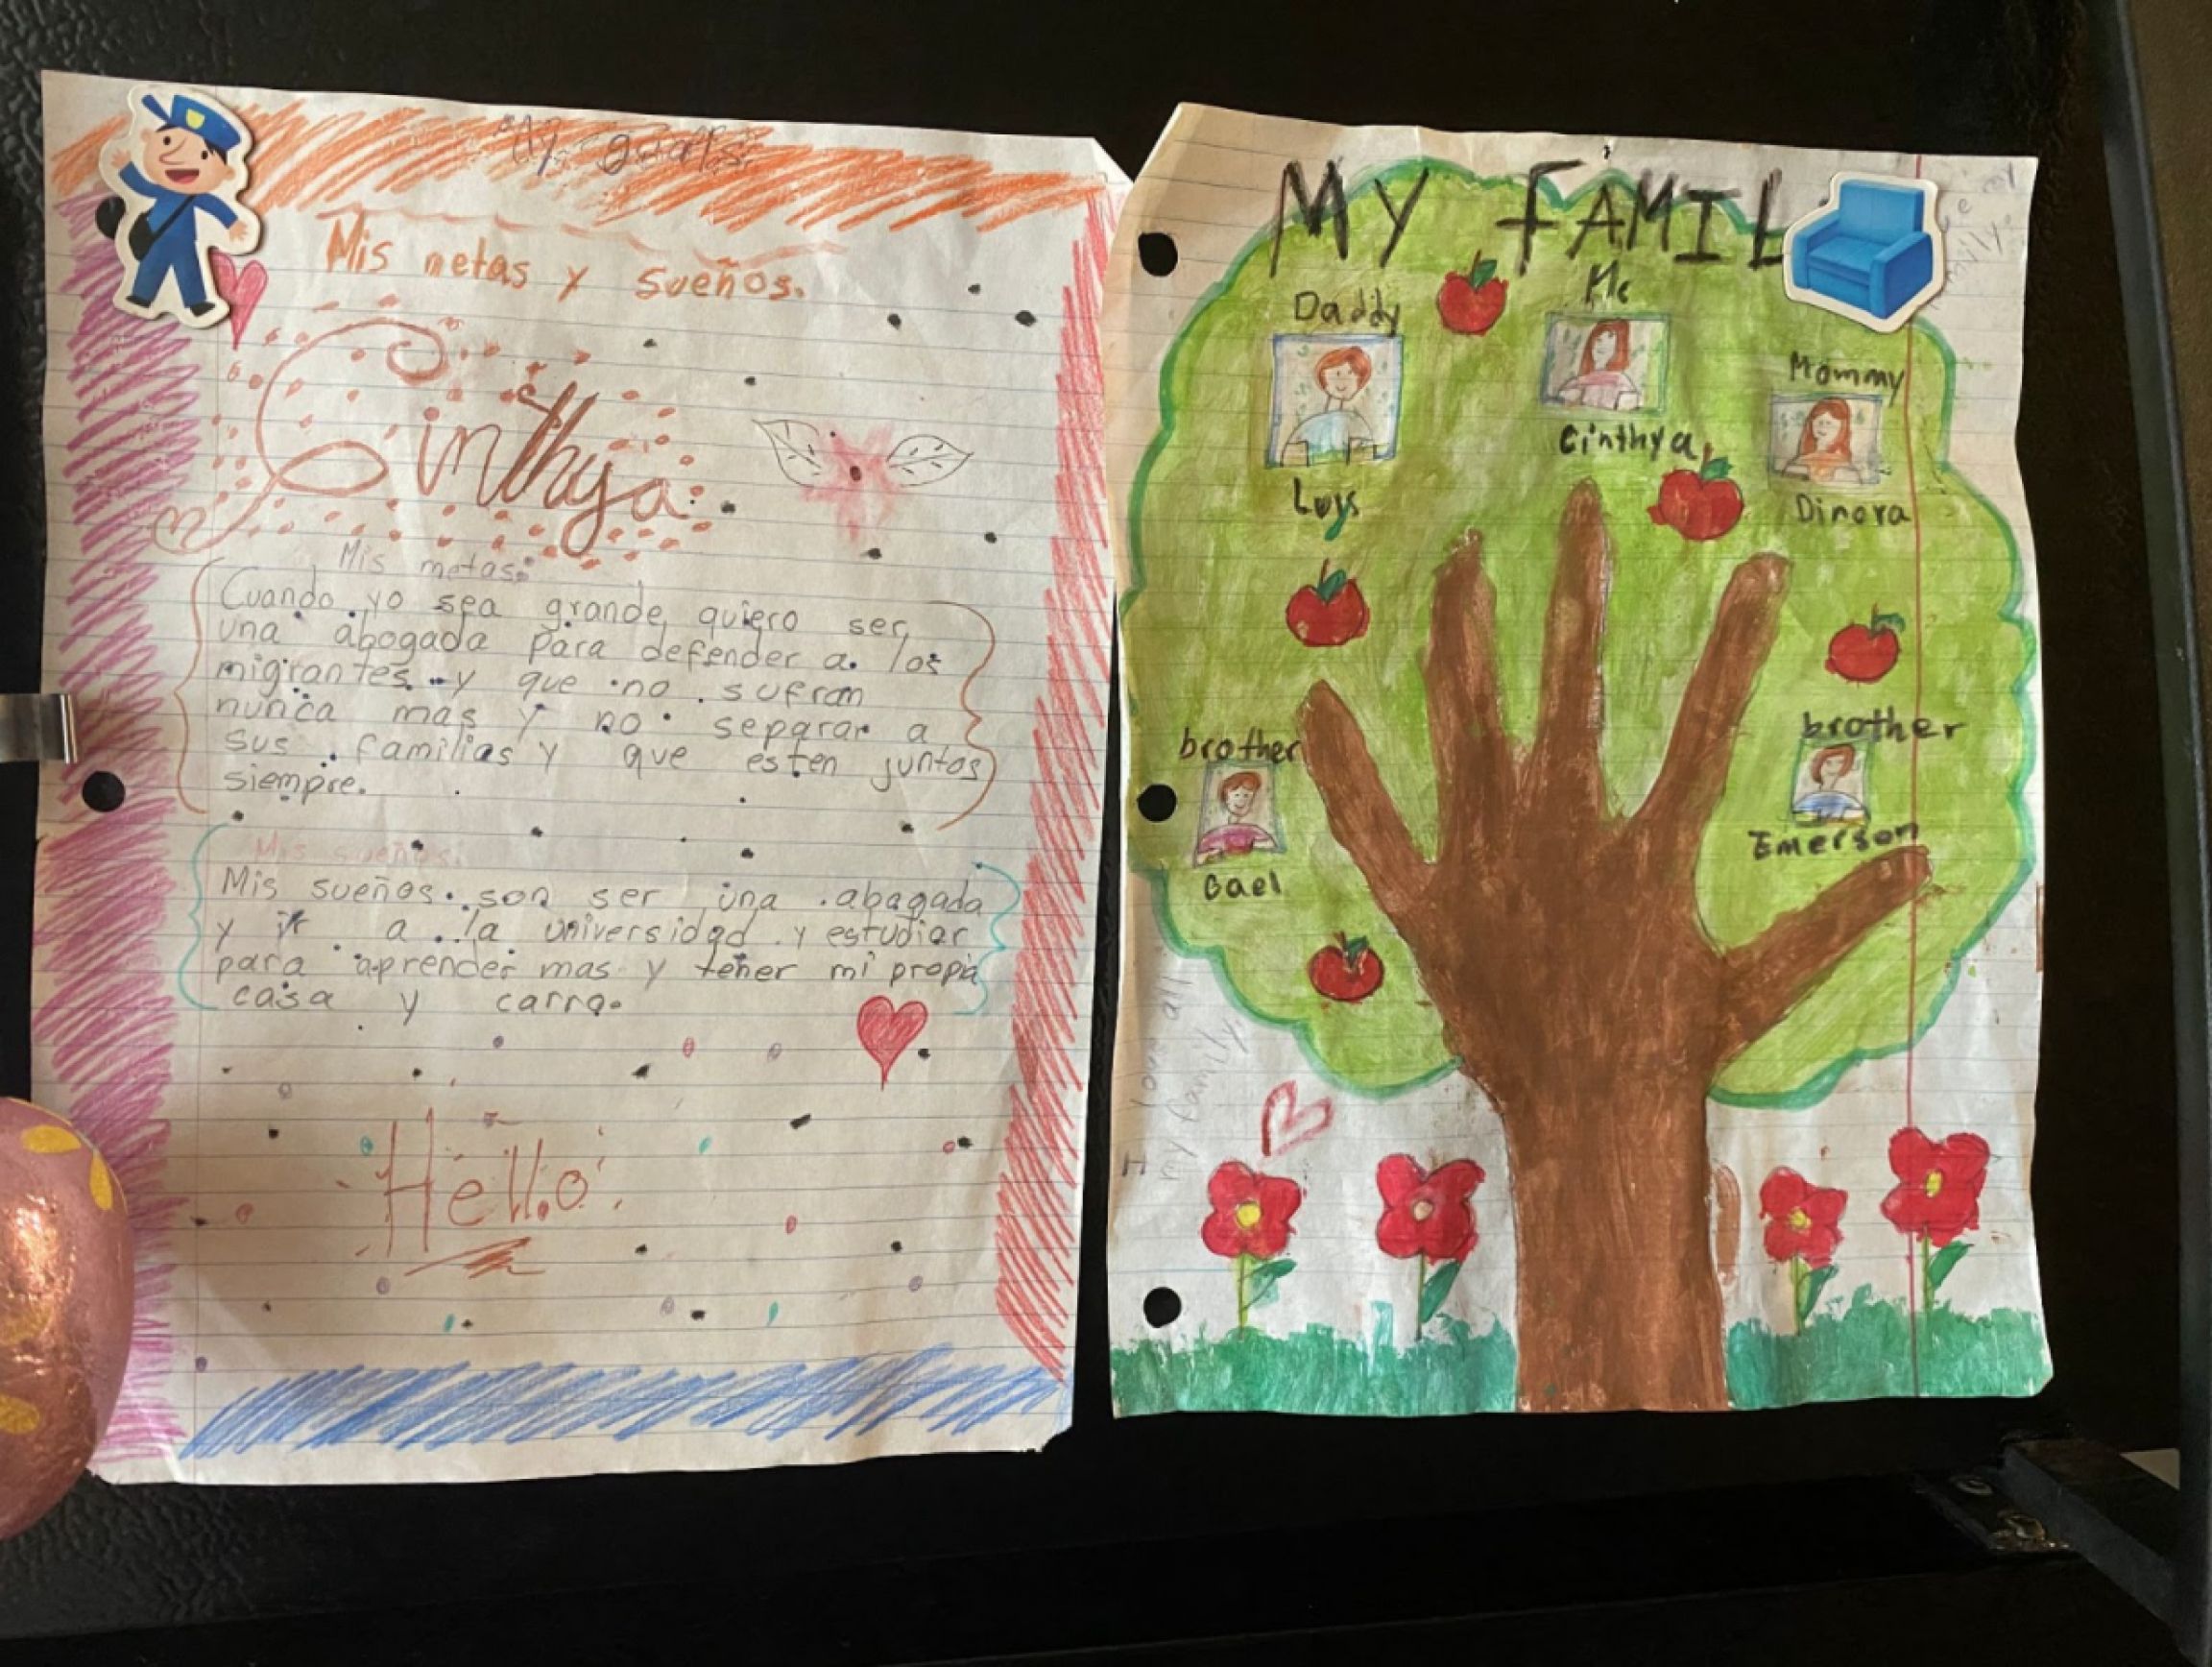 Drawings and writing by Cinthya Hernandez, 11, are posted on her family's refrigerator.